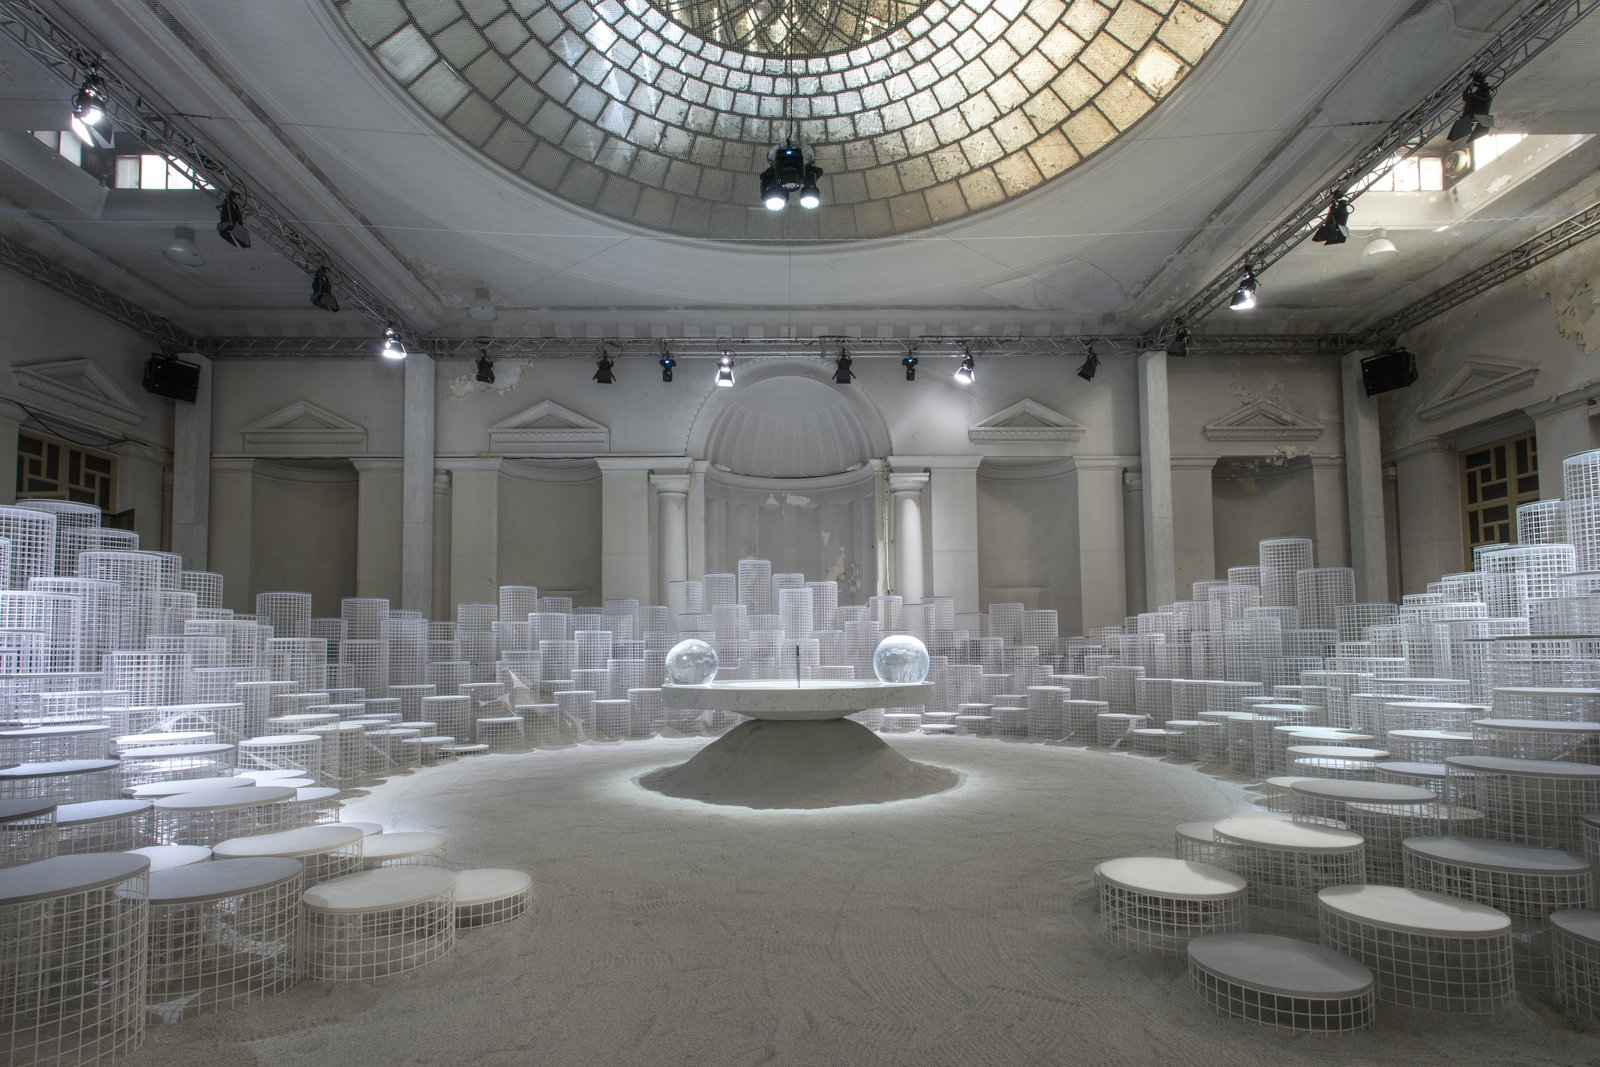 Last year during Salone, Caesarstone set the bar high with an eye-popping, prehistoric-looking installation by Jamie Hayon. This year, the company returned with Altered States, a spellbinding environment created by Snarkitecture at an aged palazzo.